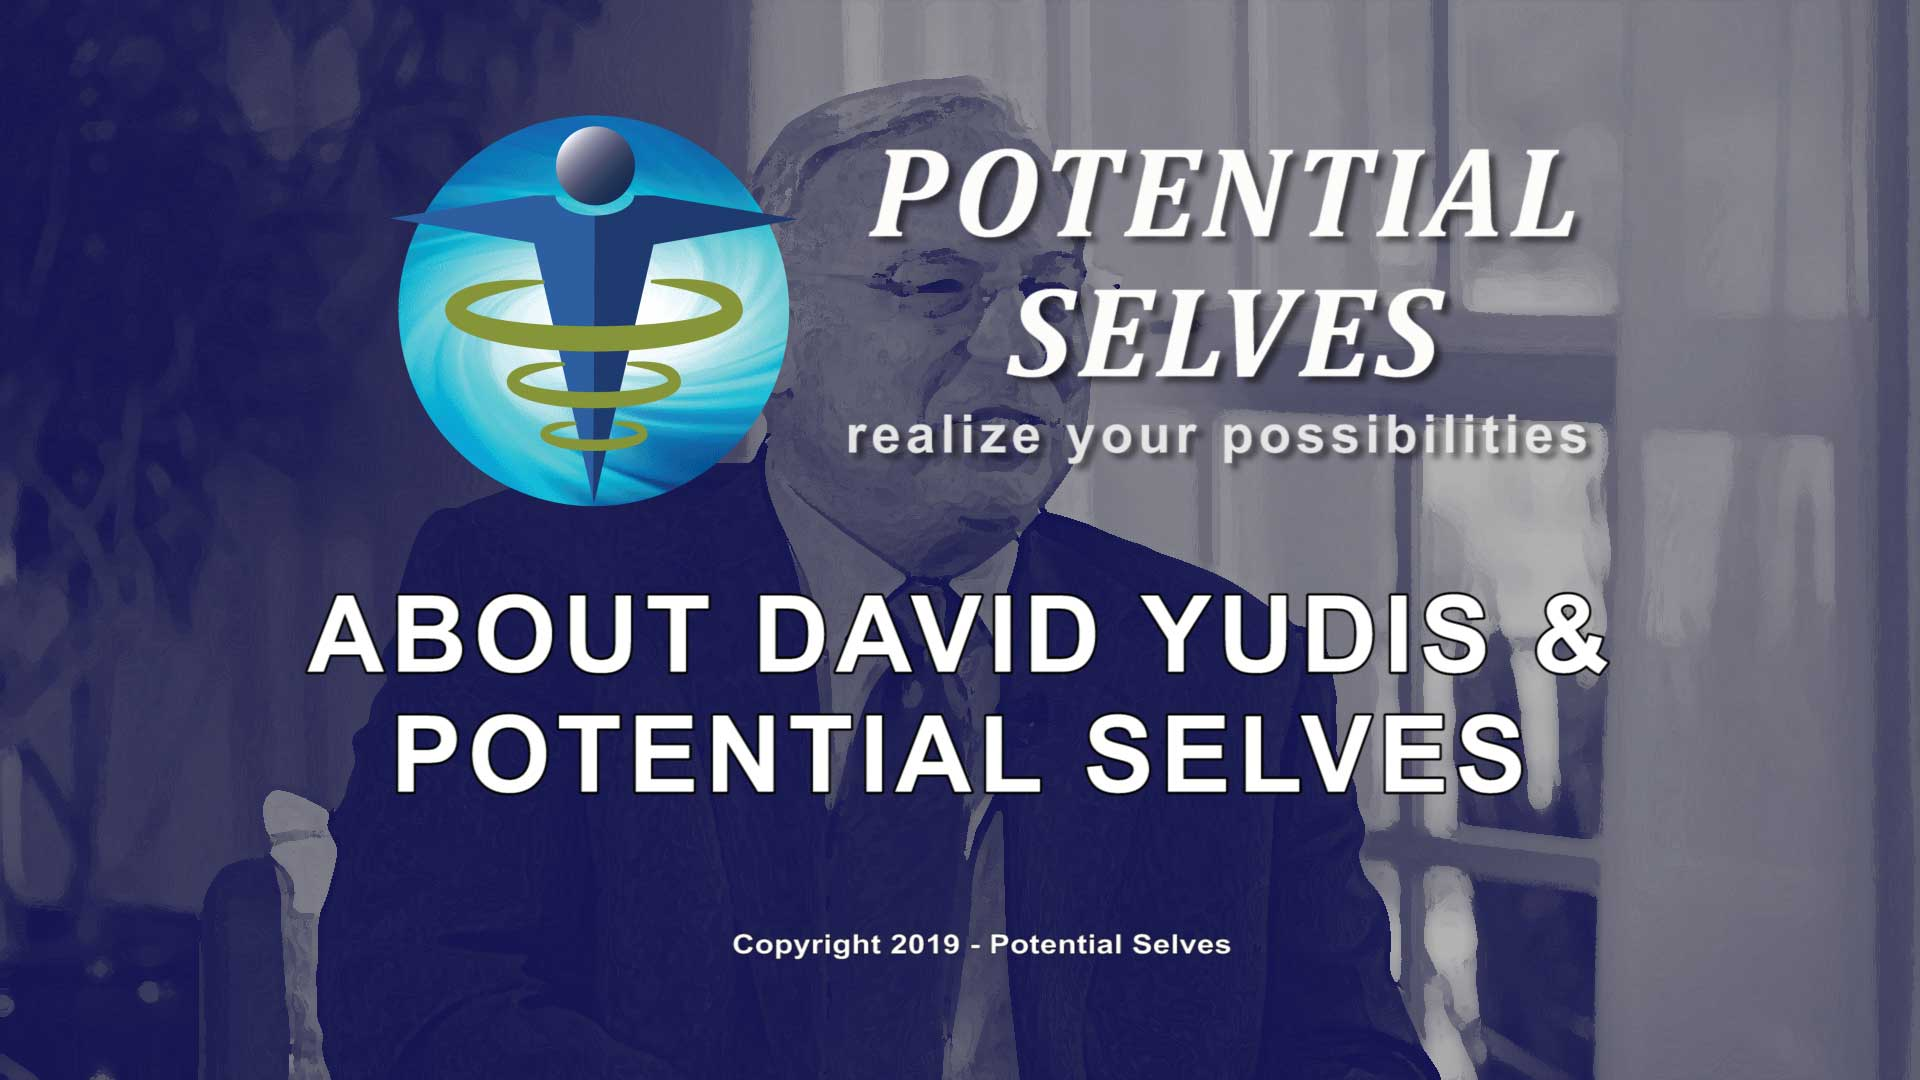 About-David-Yudis-and-Potential-Selves